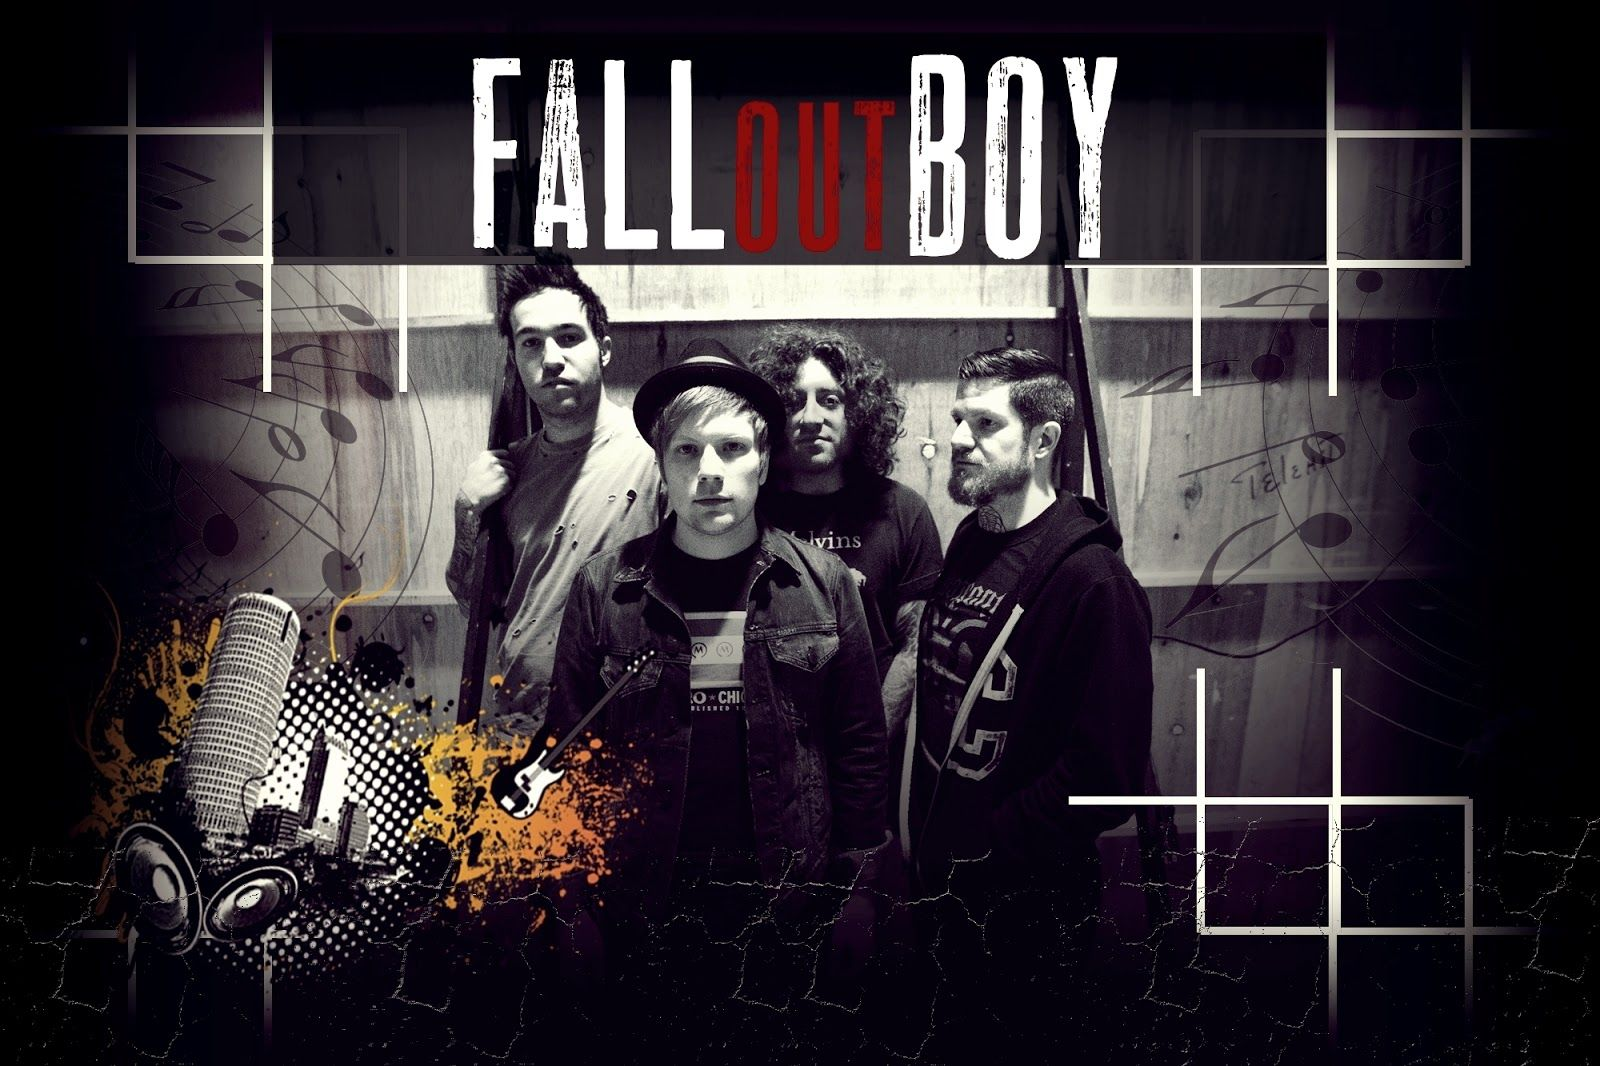 Fall Out Boy Hd Desktop Wallpapers Fall Out Boy Poster Fall Out